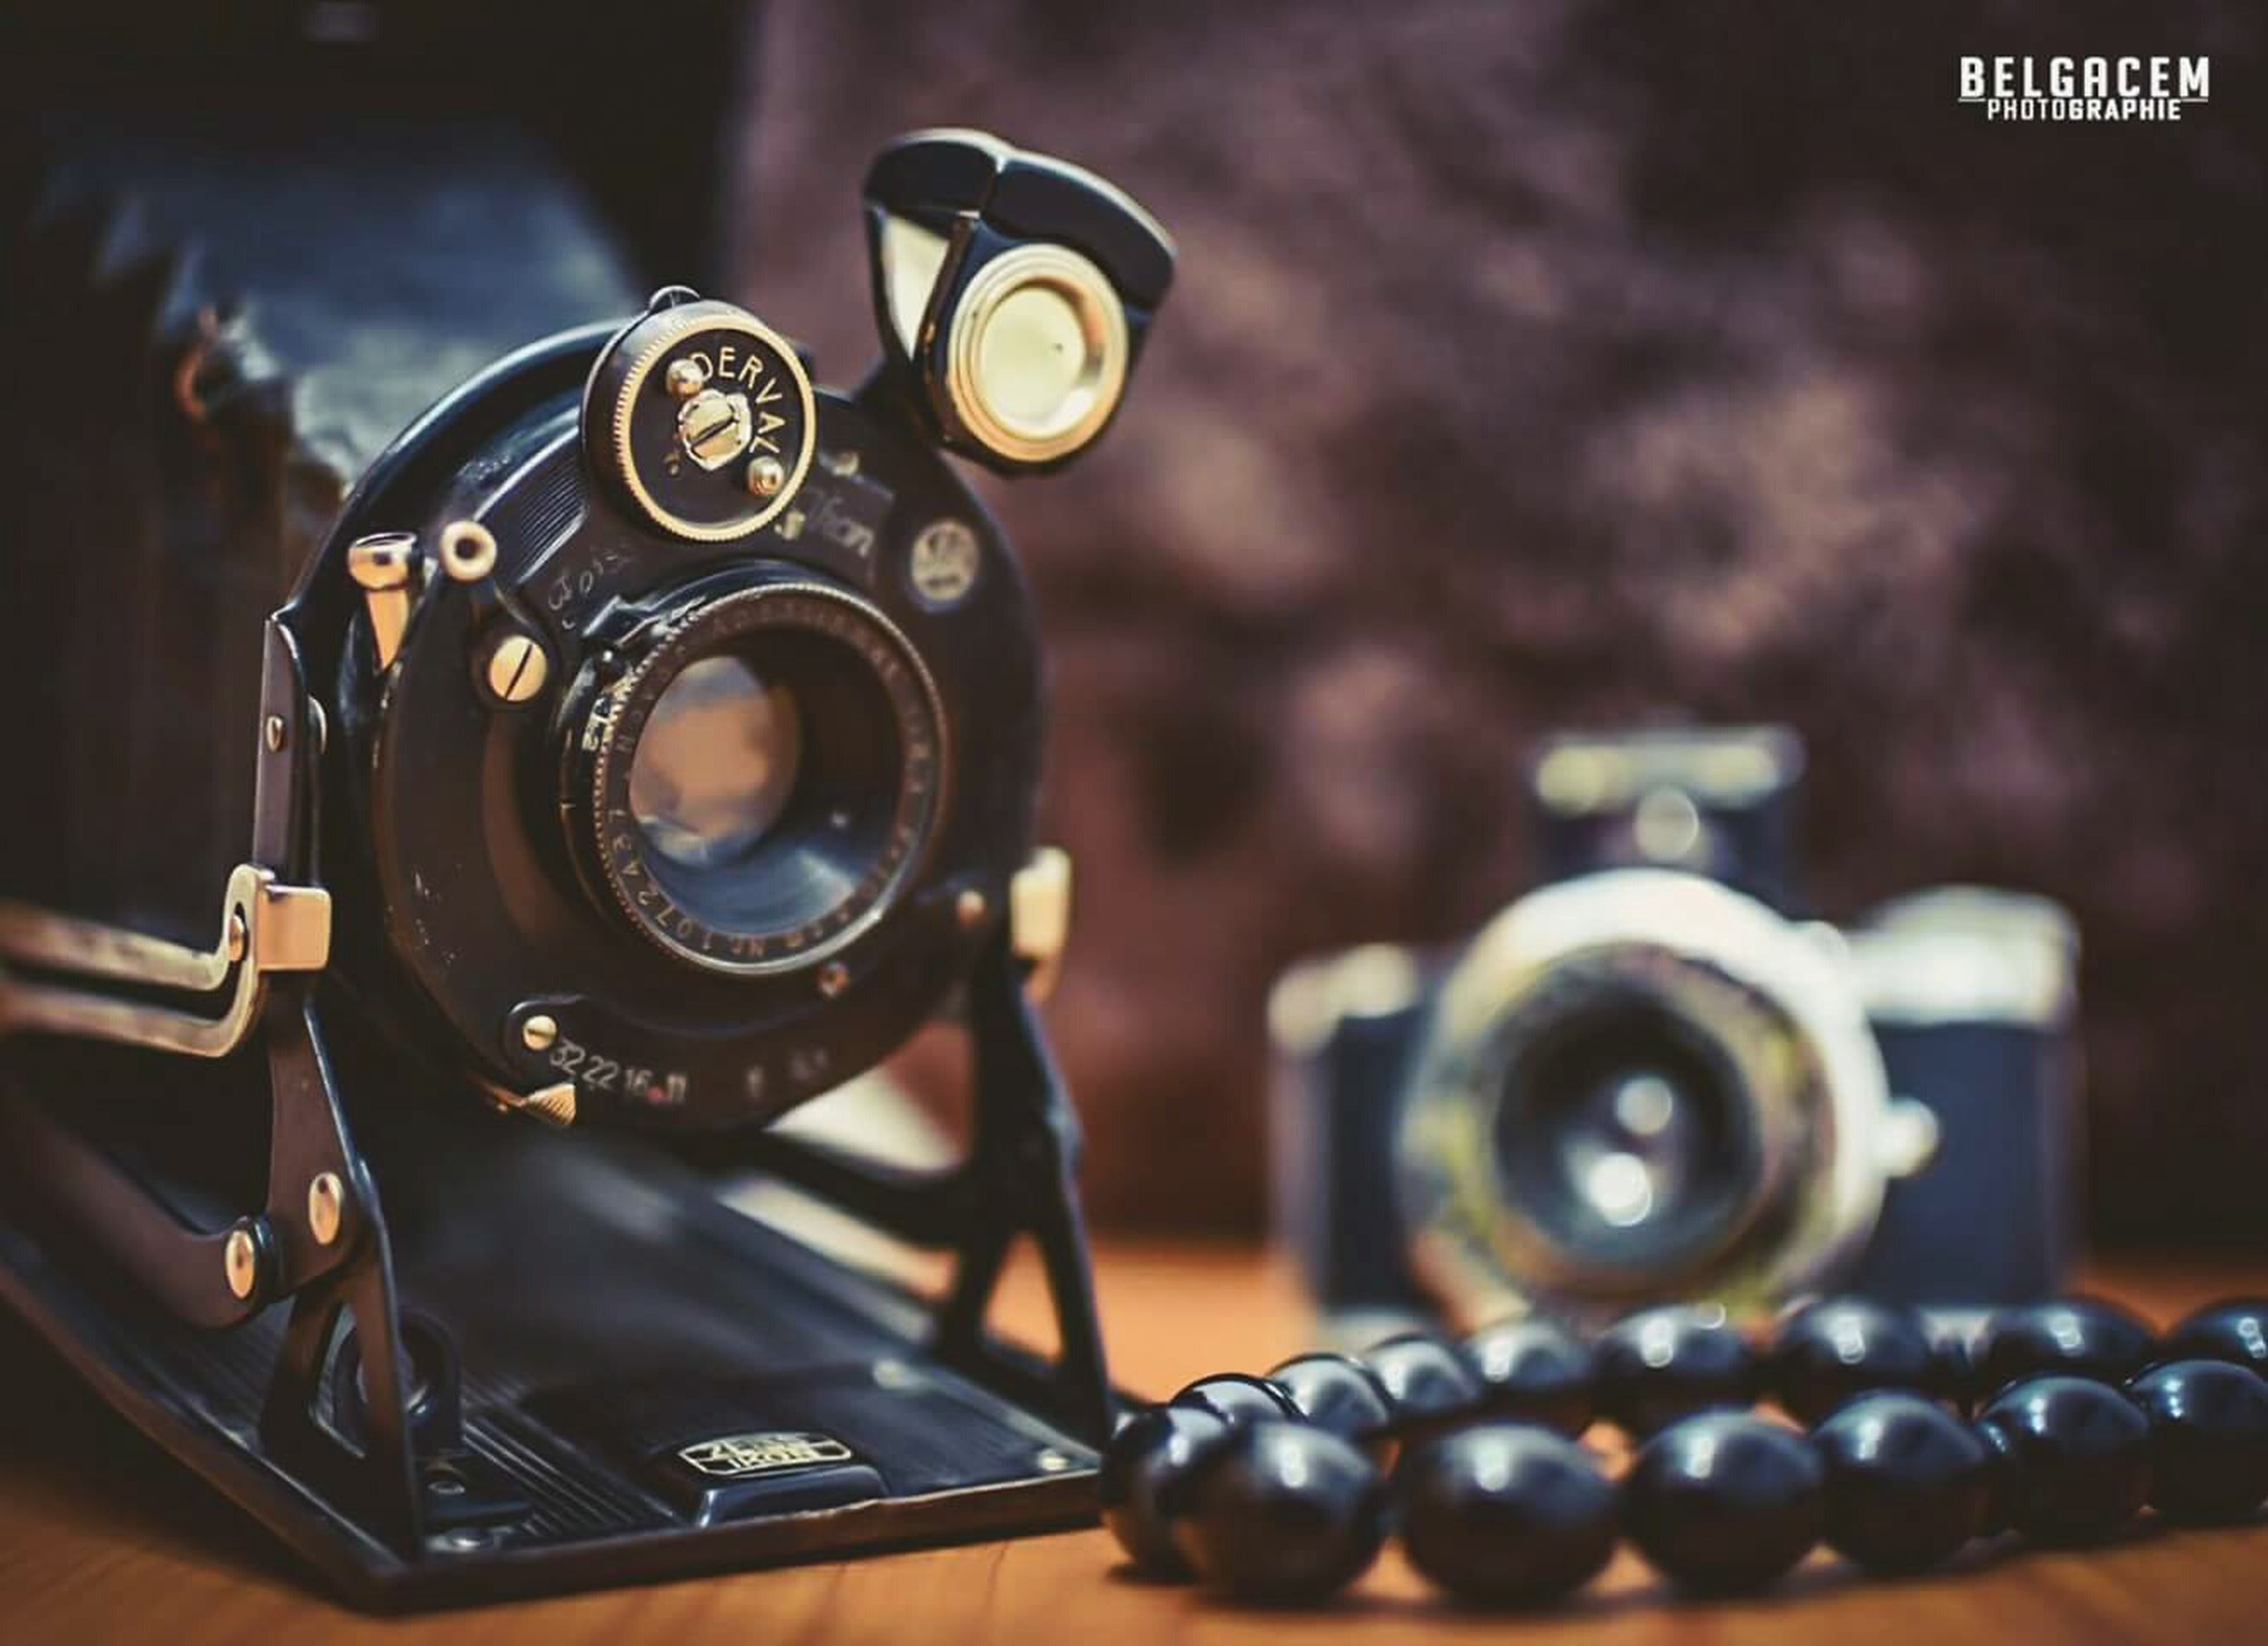 technology, close-up, selective focus, camera - photographic equipment, focus on foreground, slr camera, the past, no people, man made object, memories